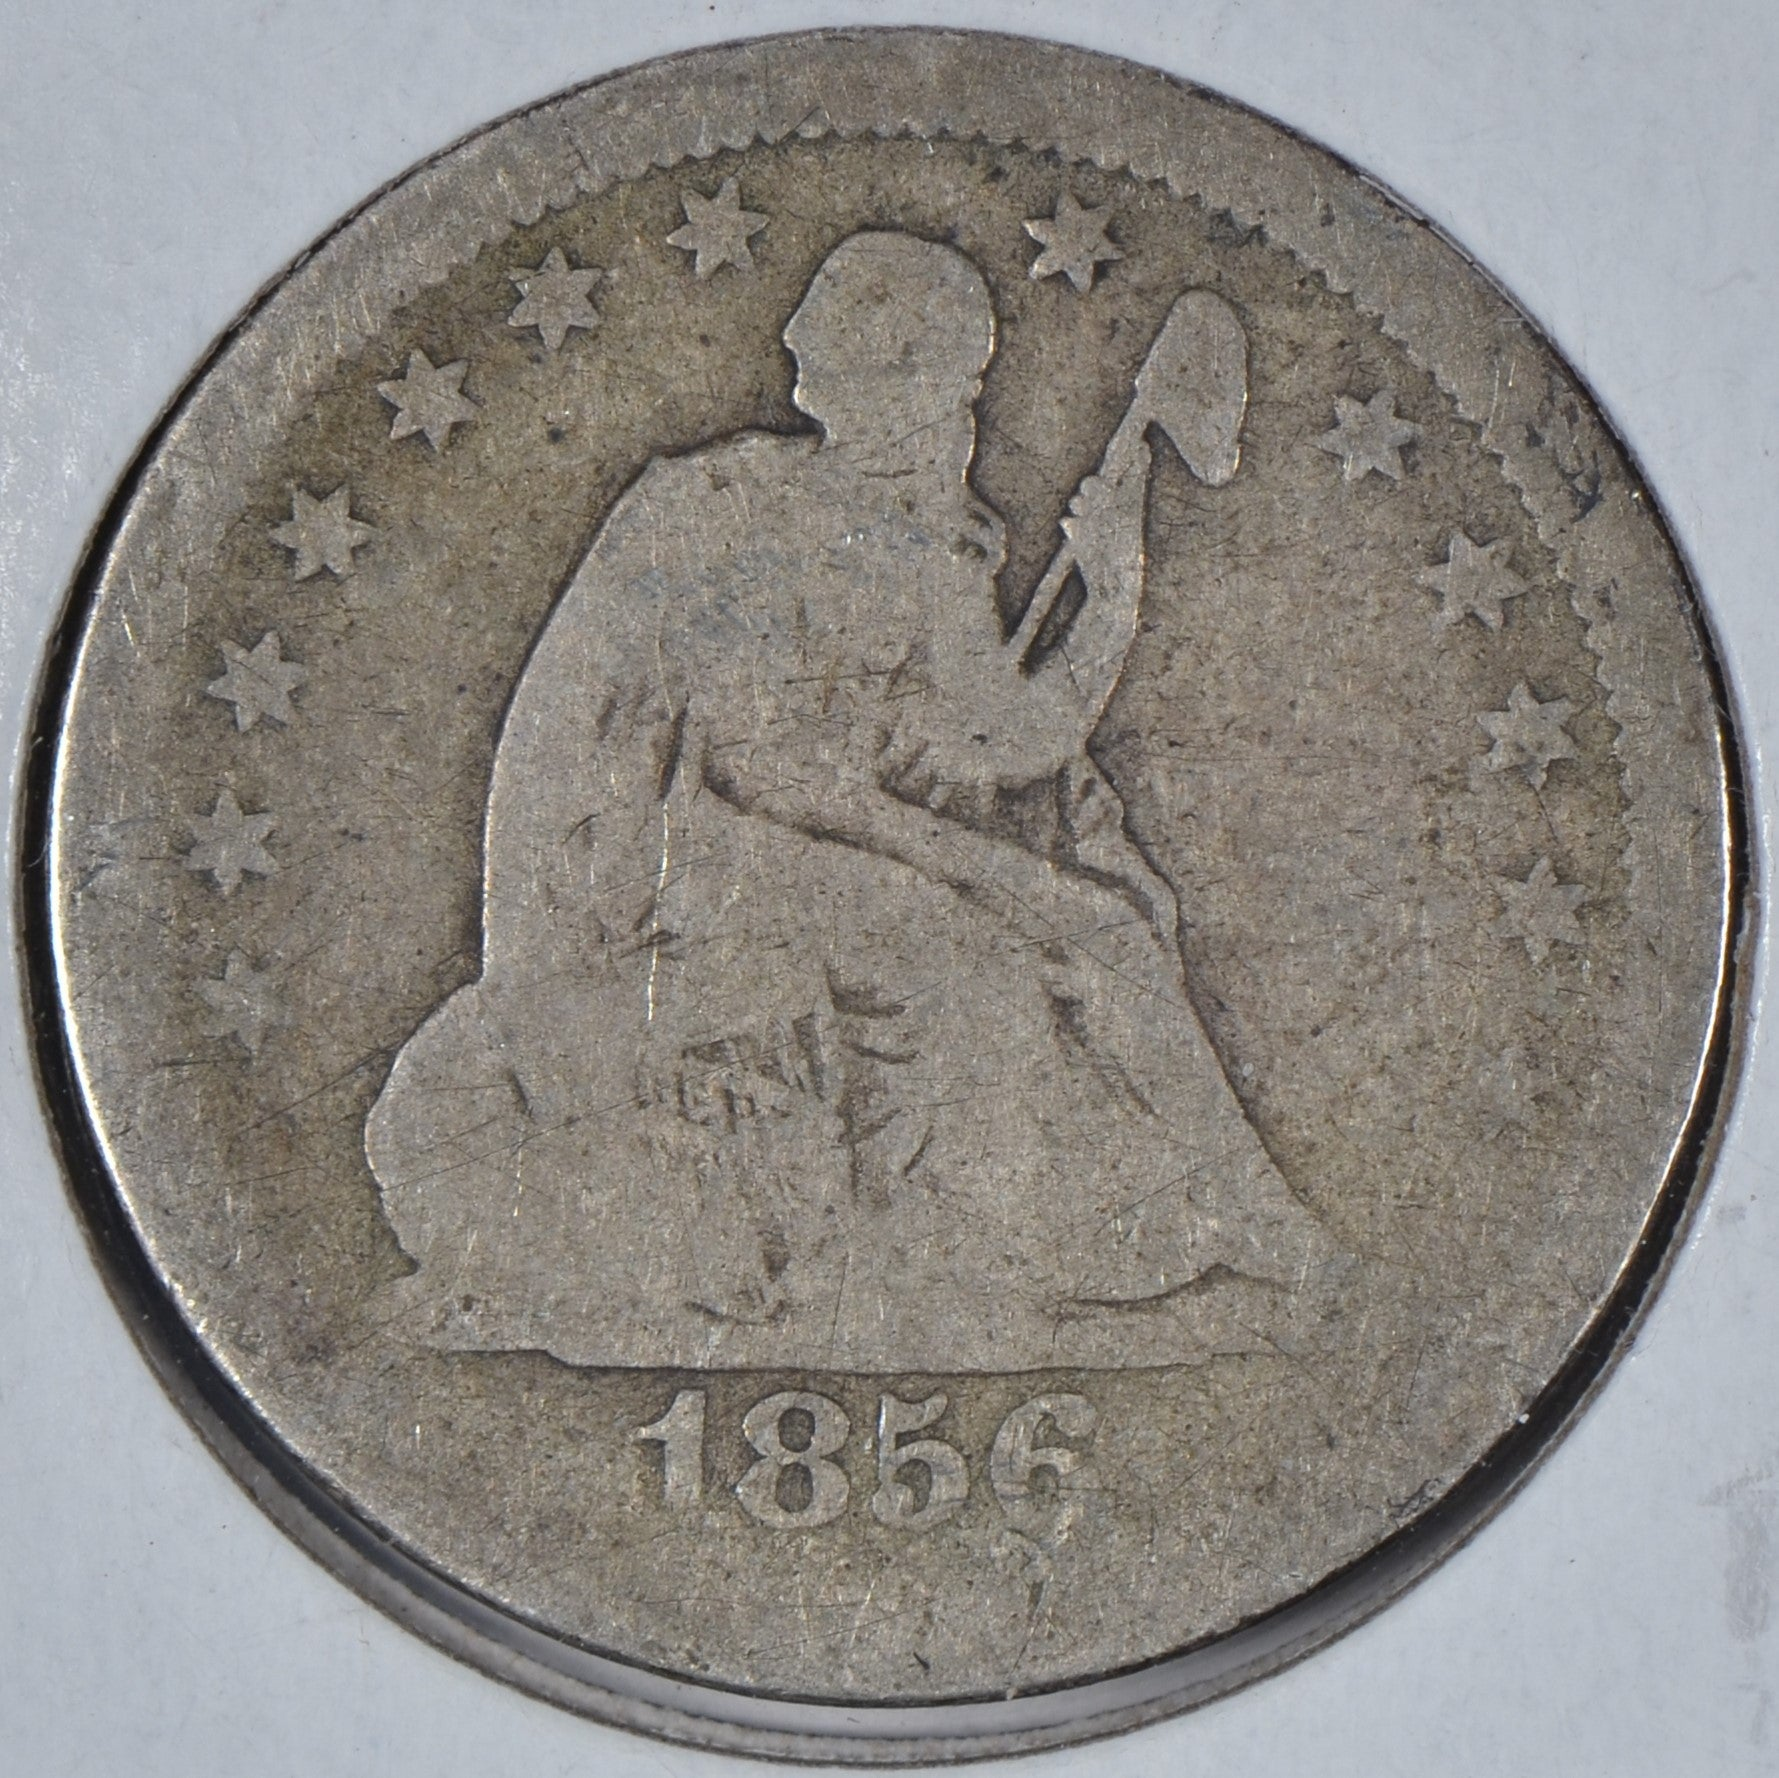 1856 Seated Liberty Quarter About Good